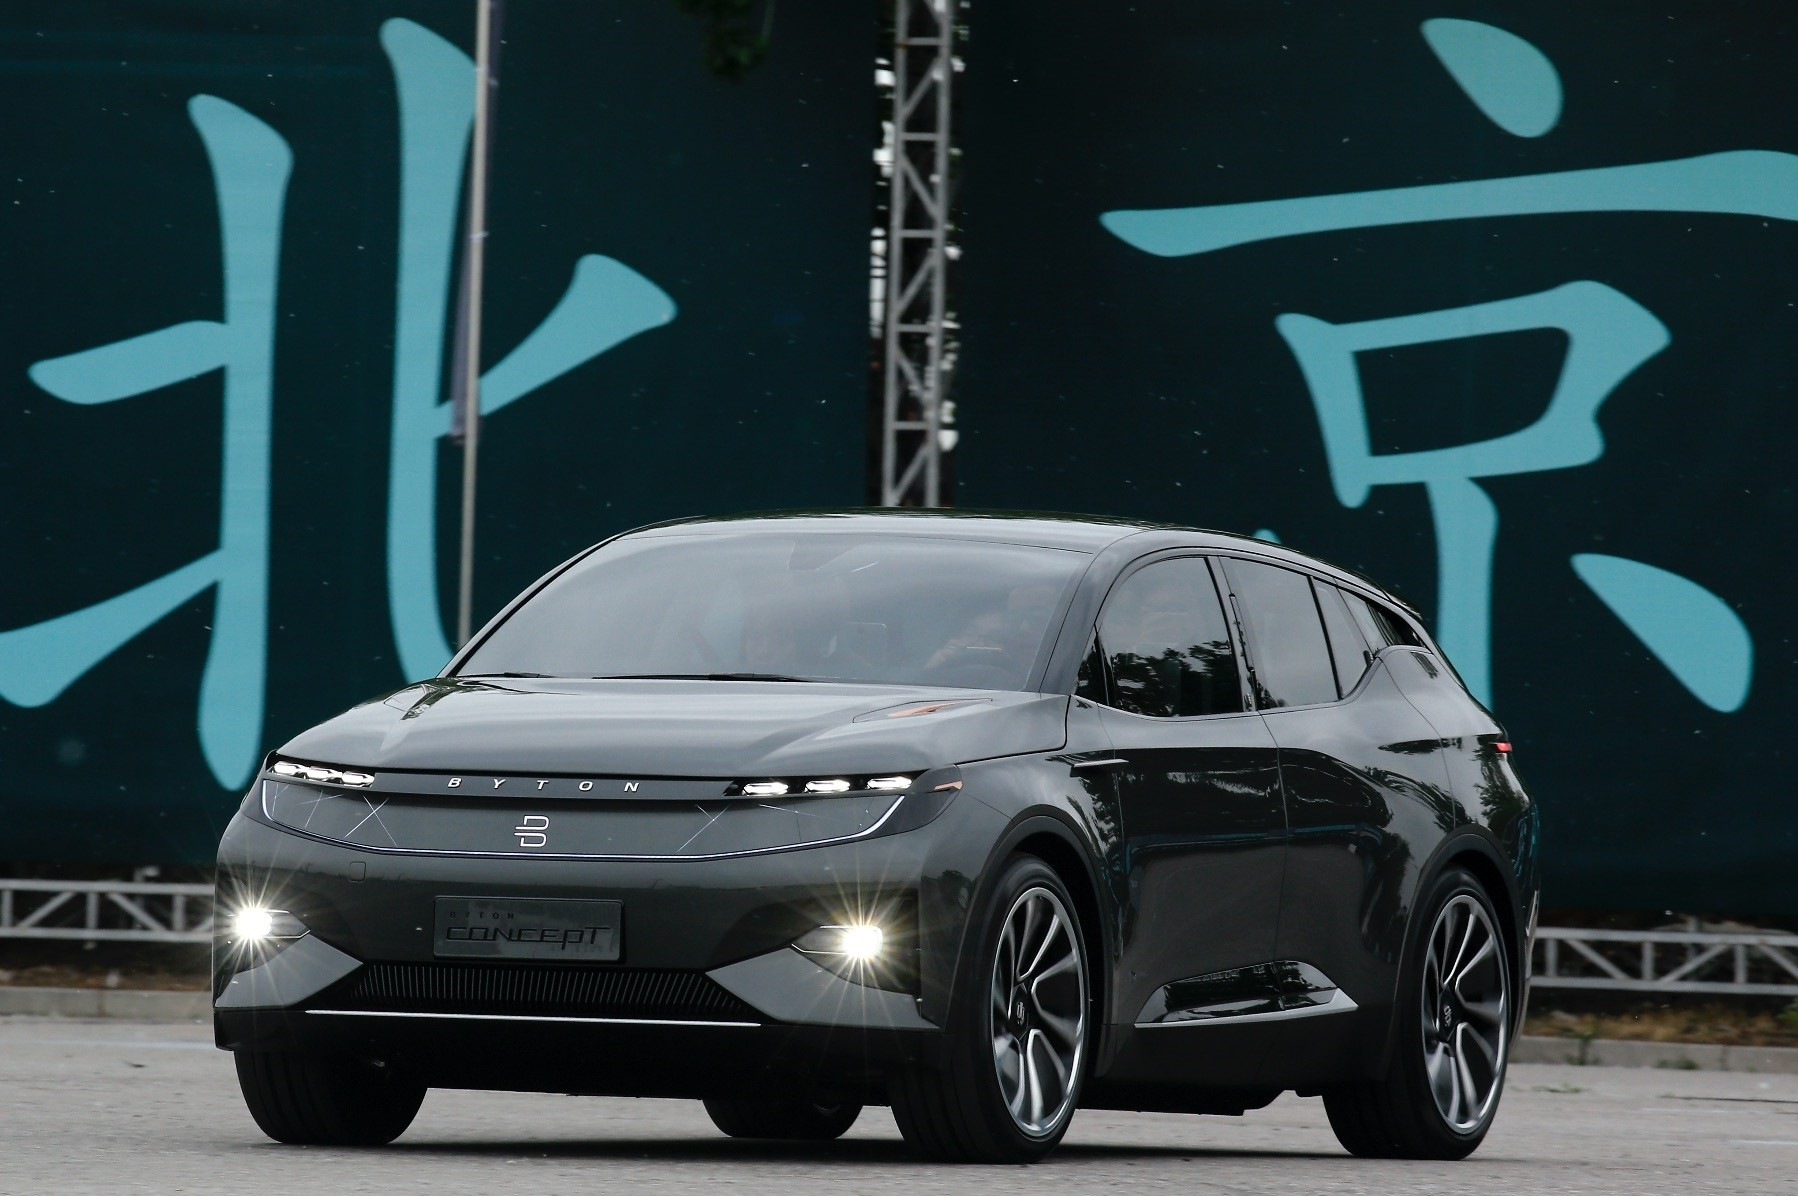 A BYTON electric concept car is driven by invited guests and journalists during a test drive event ahead of the Auto China 2018 automotive exhibition in Beijing.